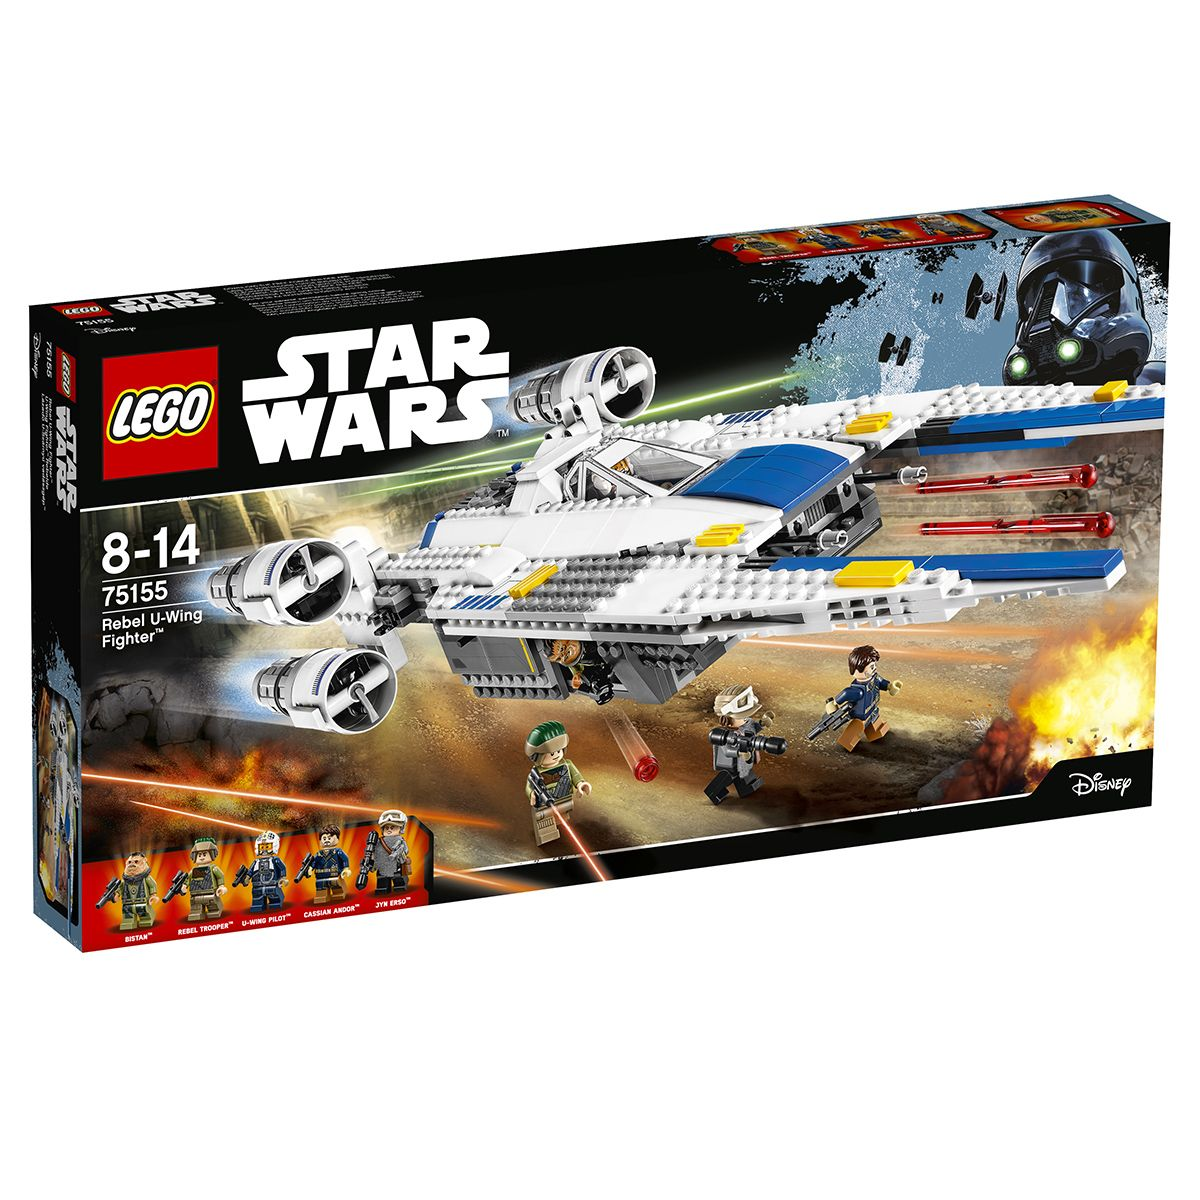 Star Sciences Wars Robots Fictions Lego Rebel Fighter Et Uwing zMpGqSUV